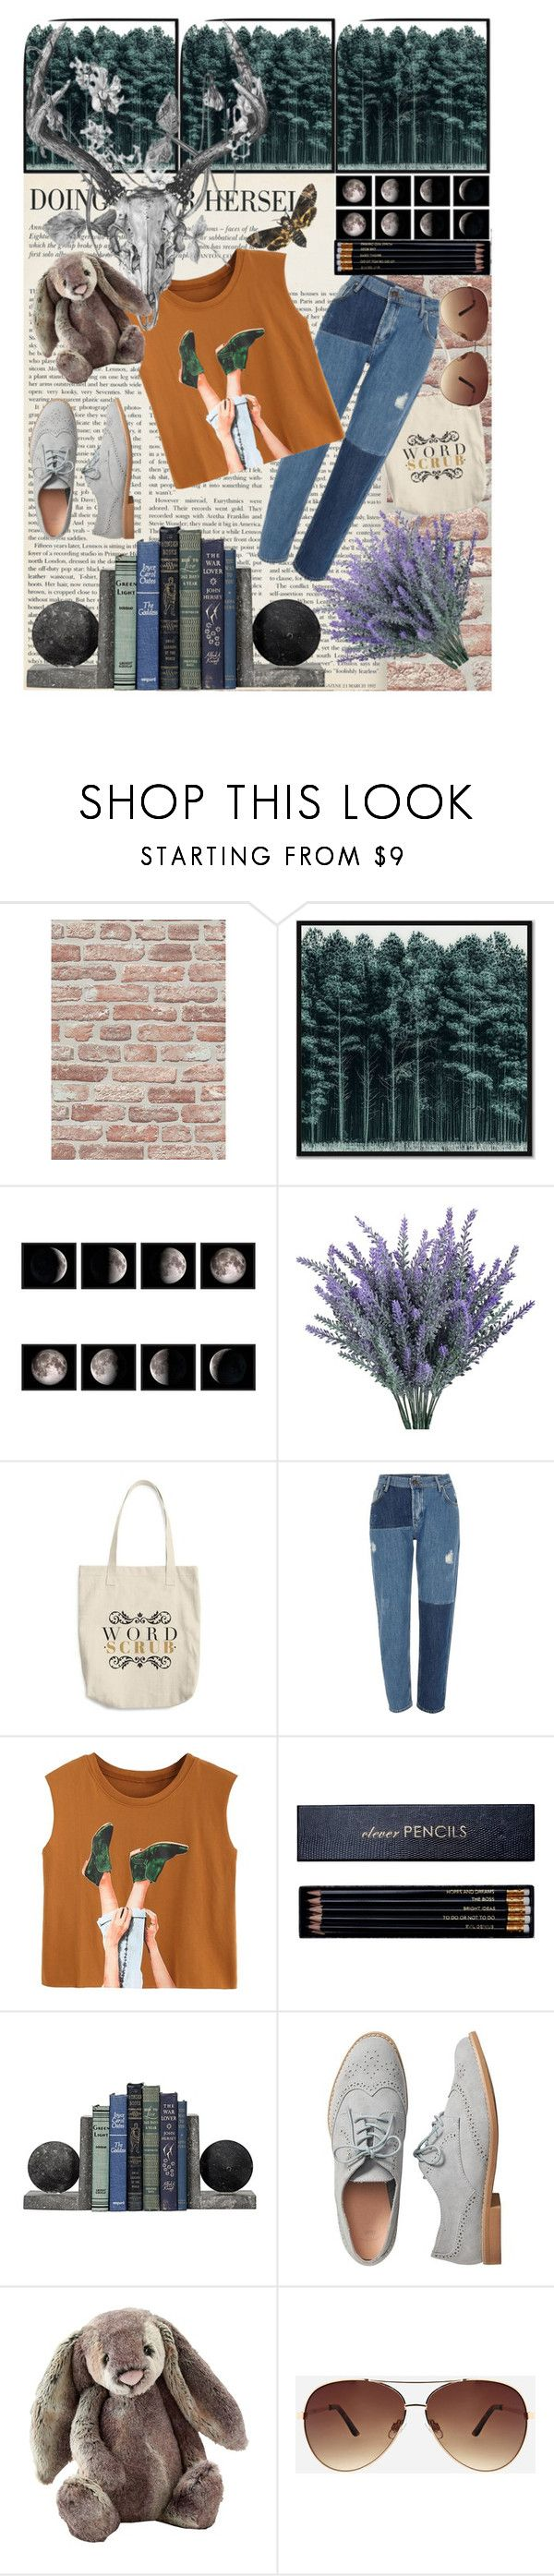 """""""City Nymph"""" by lilmrsmocha ❤ liked on Polyvore featuring West Elm, River Island, Sloane Stationery, Gap, Jellycat and Ashley Stewart"""